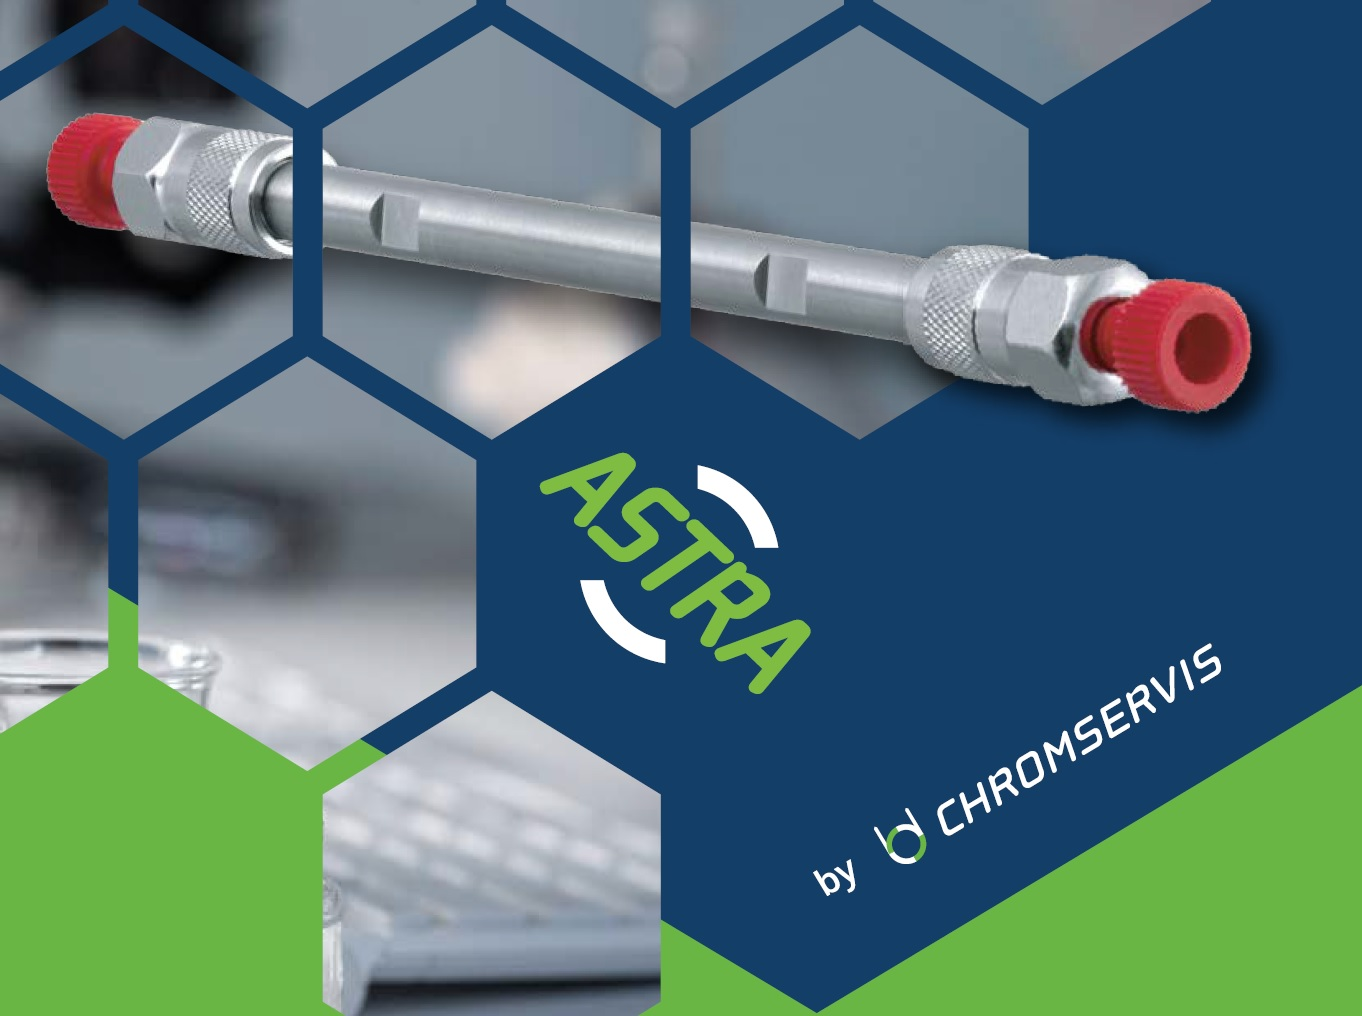 Chromservis: ASTRA HPLC columns extend ARION and CHROMSHELL product lines